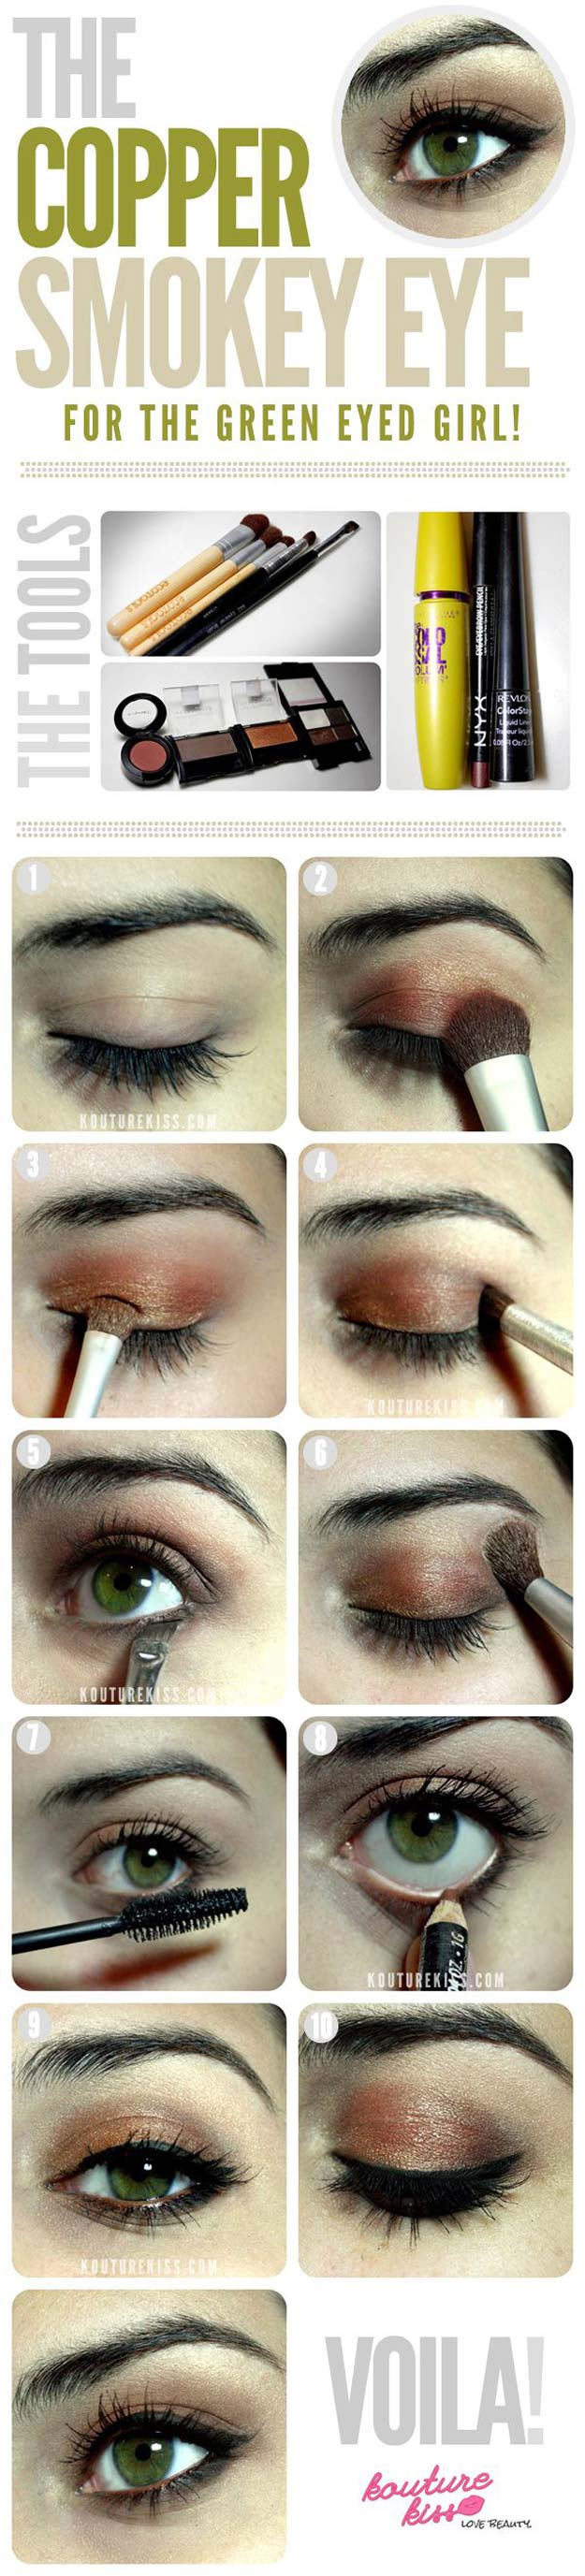 10 Lovable Prom Makeup Ideas For Hazel Eyes 38 makeup ideas for prom the goddess 1 2021